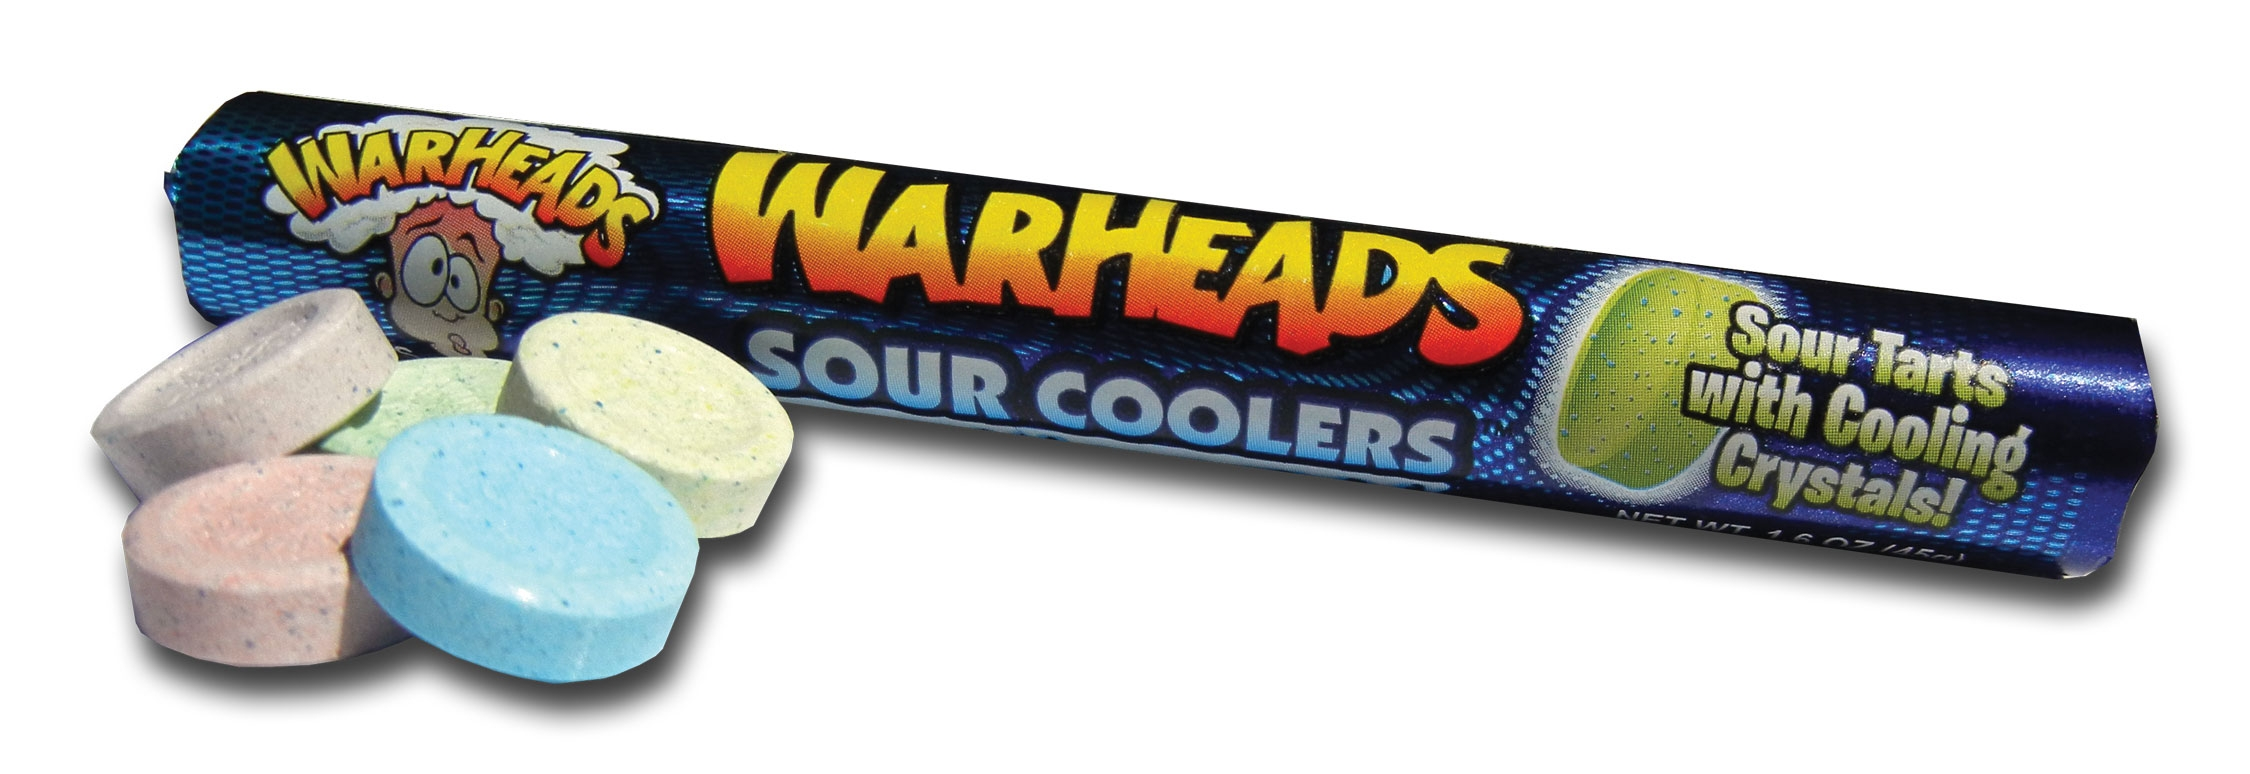 Warheads Sour Coolers 2